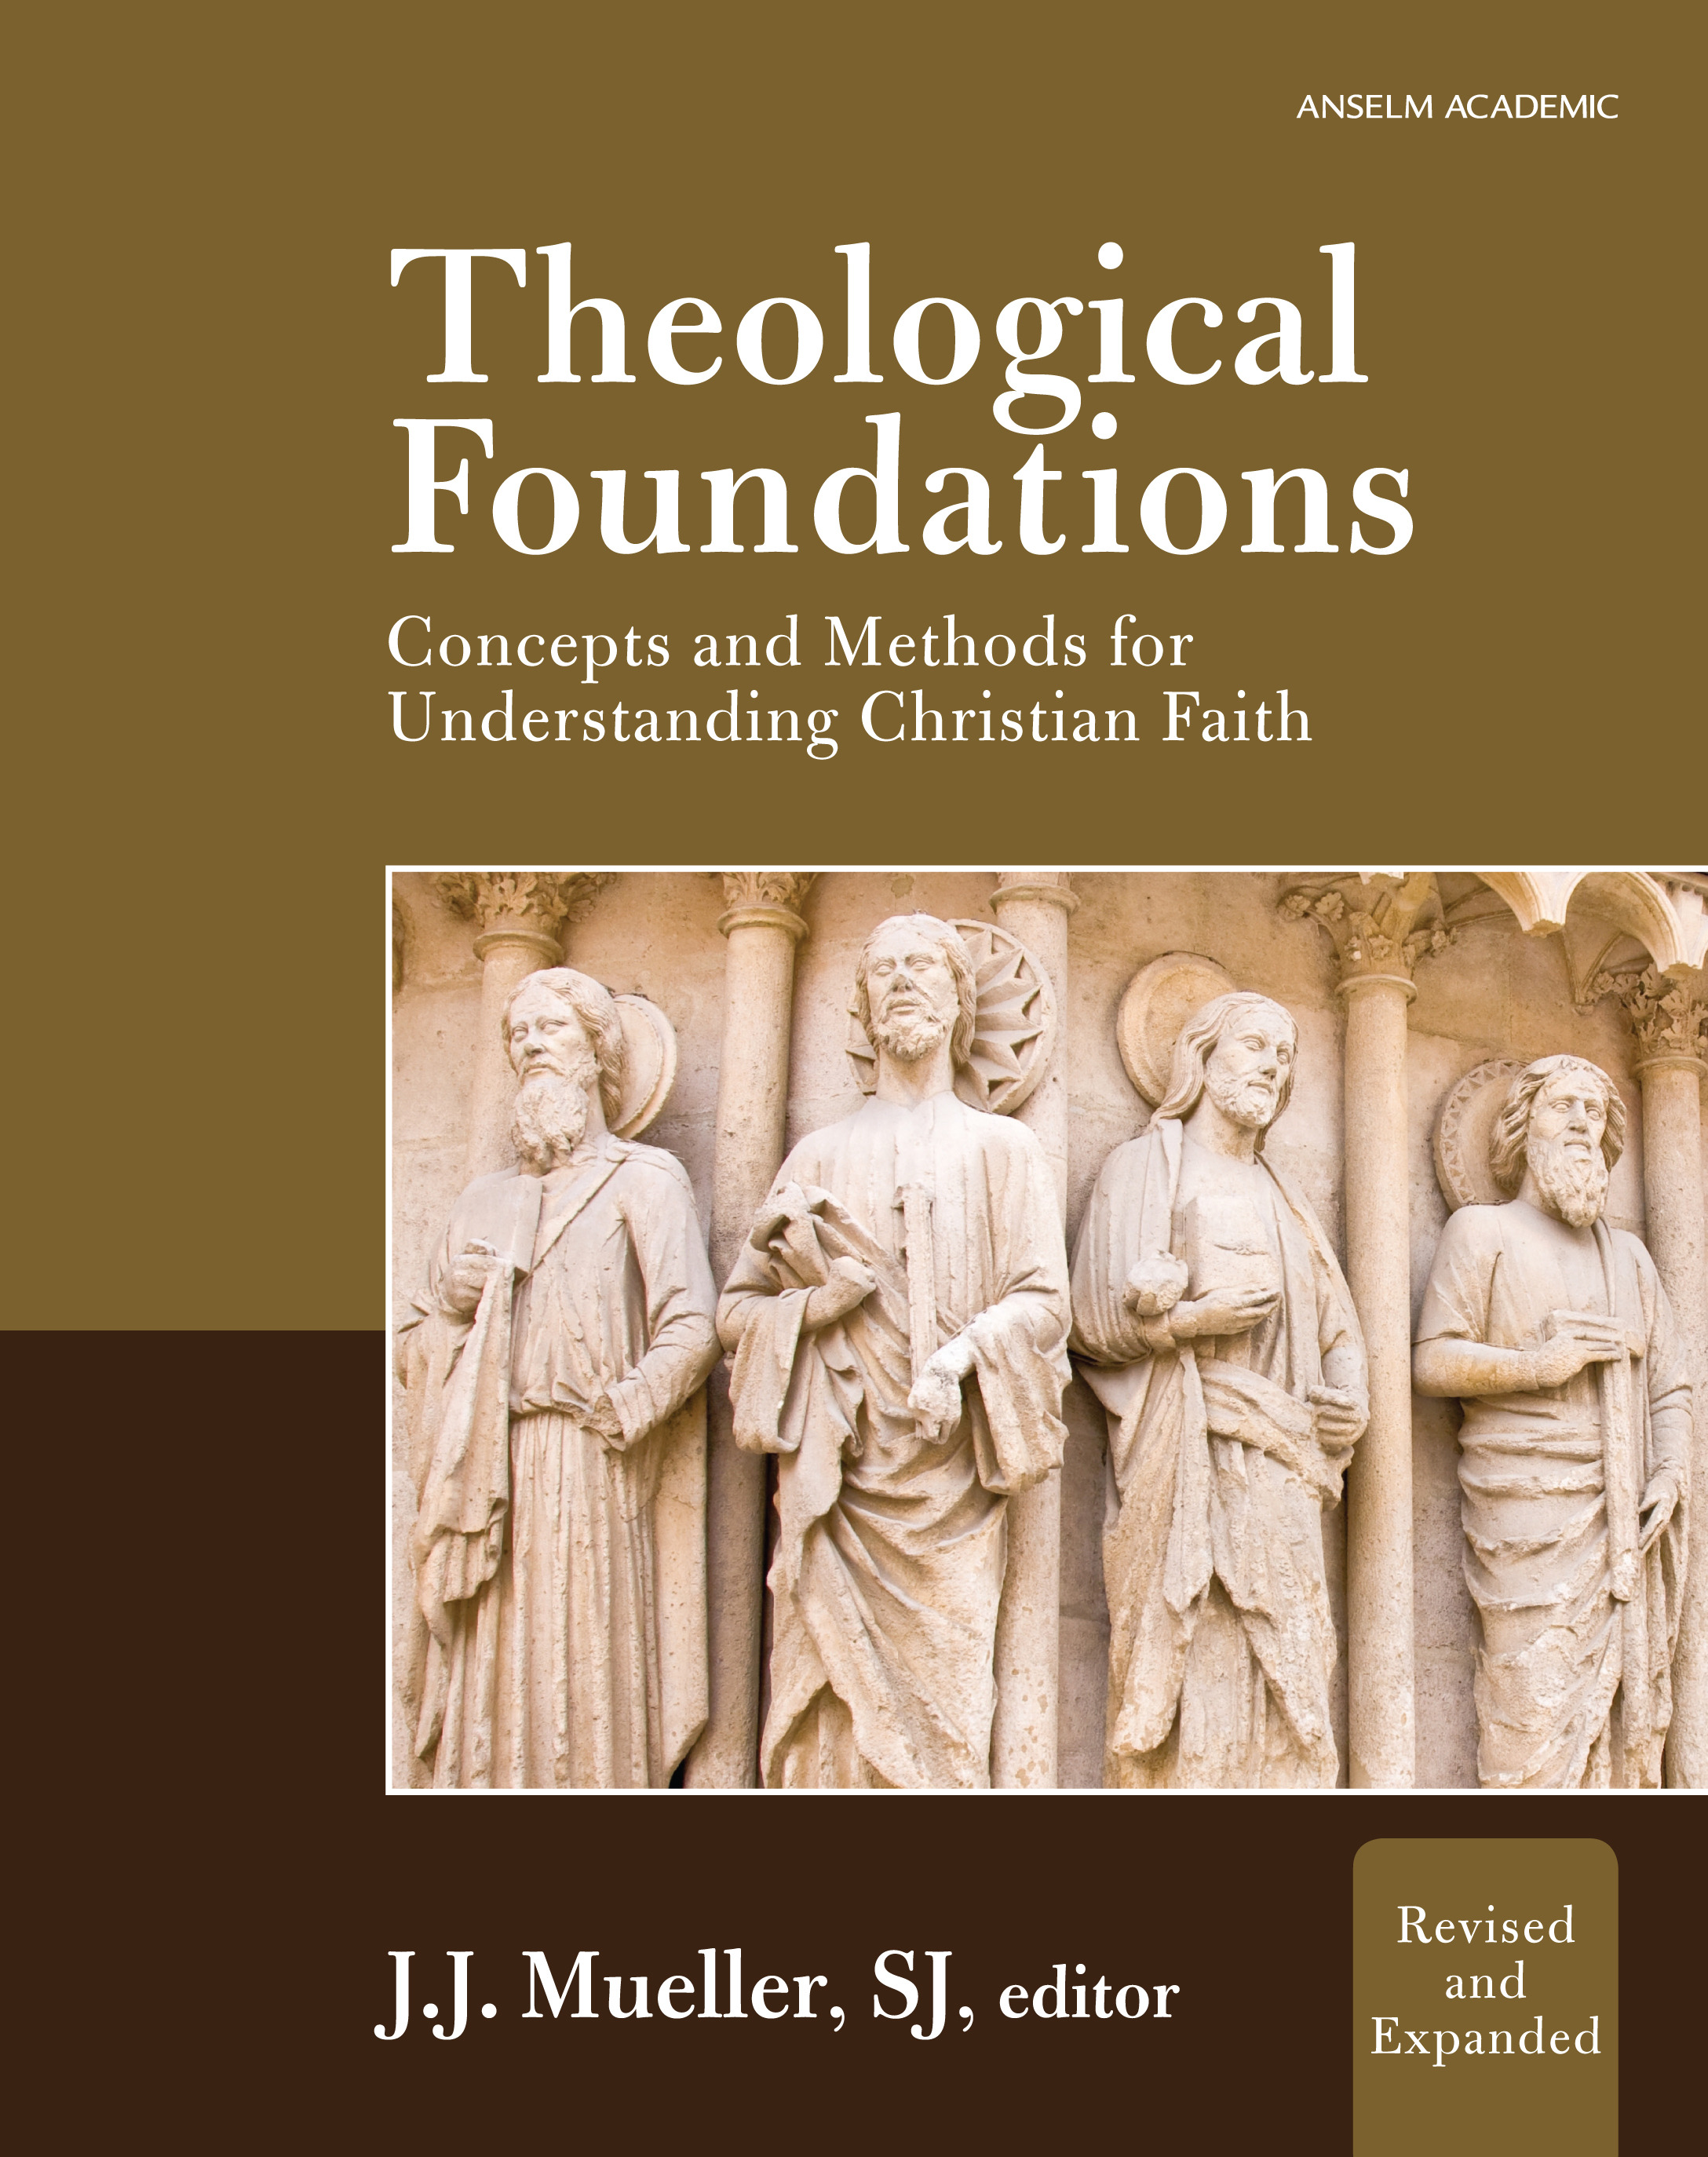 Theological Foundations: Concepts and Methods for Understanding Christian Faith - Revised & Expanded